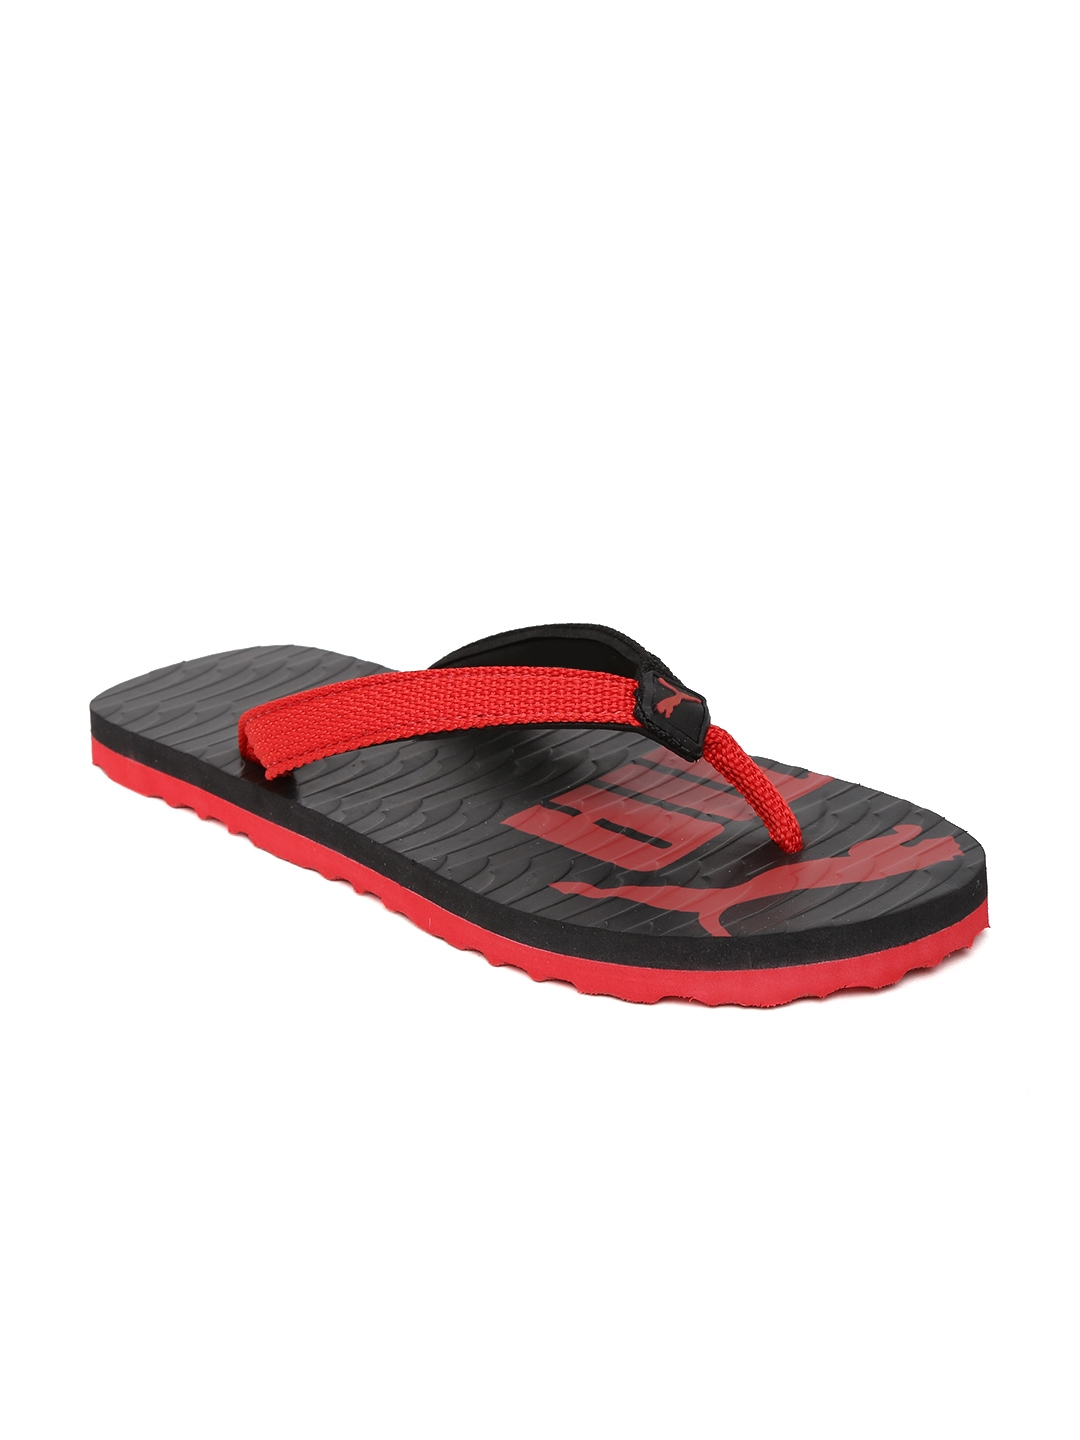 myntra puma unisex black red miami valueline ii dp flip flops 868137 buy myntra puma flip. Black Bedroom Furniture Sets. Home Design Ideas